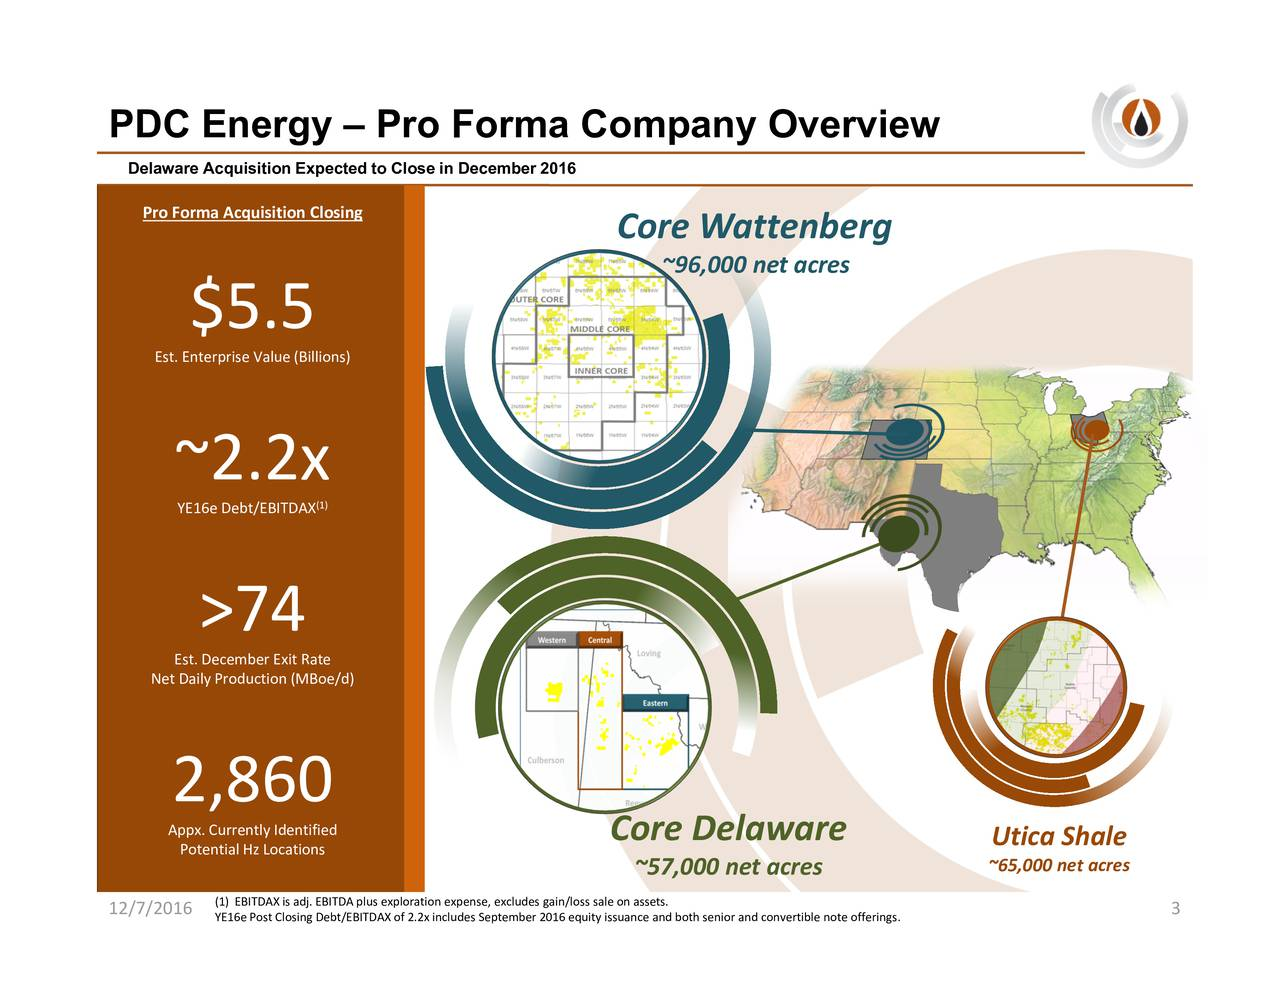 Ut~65,000netacres . ~96,000netacres CoreWattenberg ~57,000netacres CoreDelaware equityissuanceandbothseniorandconvertiblenoteofferings gain/losssaleonassets. explorationexpense,excludes (1) (1)EBITDAXisadj.EBITDAplusof2.2xincludesSeptember2016 $5.5 YE16eDebt/EBITDAX PotentialHzLocations Est.EnterpriseValue(BilNetDailyProduction(MBoe/d)dentified Delaware Acquisition Expected to Close in December 2016 PDC Energy  Pro Forma Company Overvi e27/2016